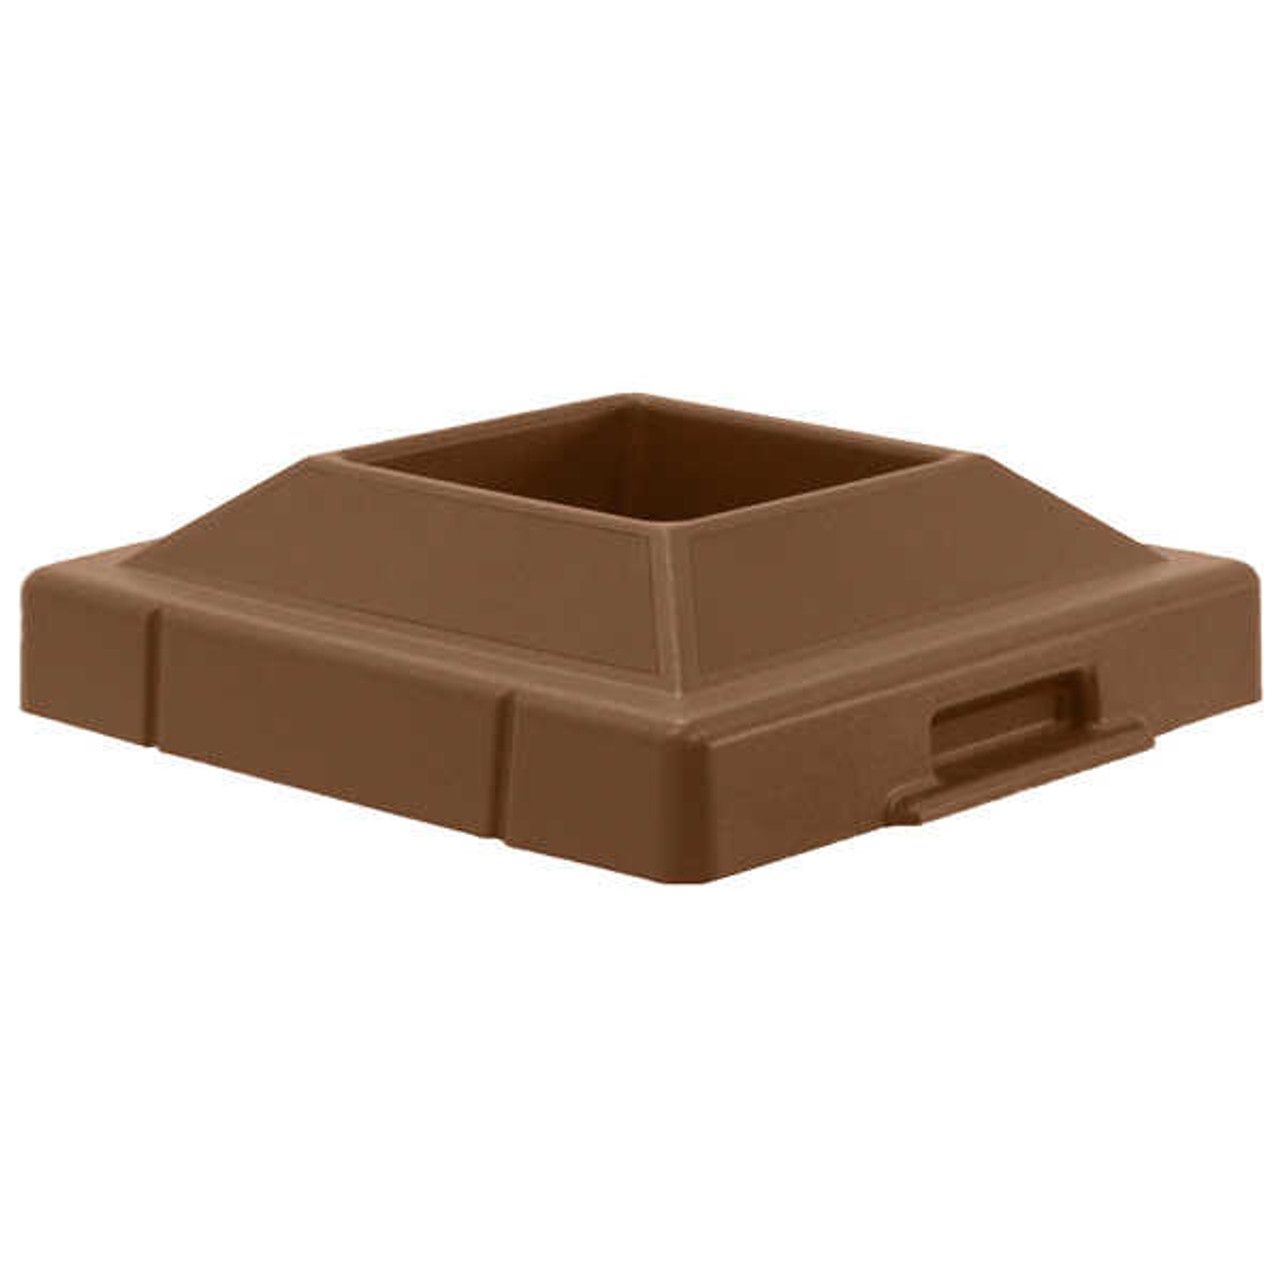 20.5 x 20.5 Pitch In Plastic Lids TF1420 for Square Trash Cans BROWN